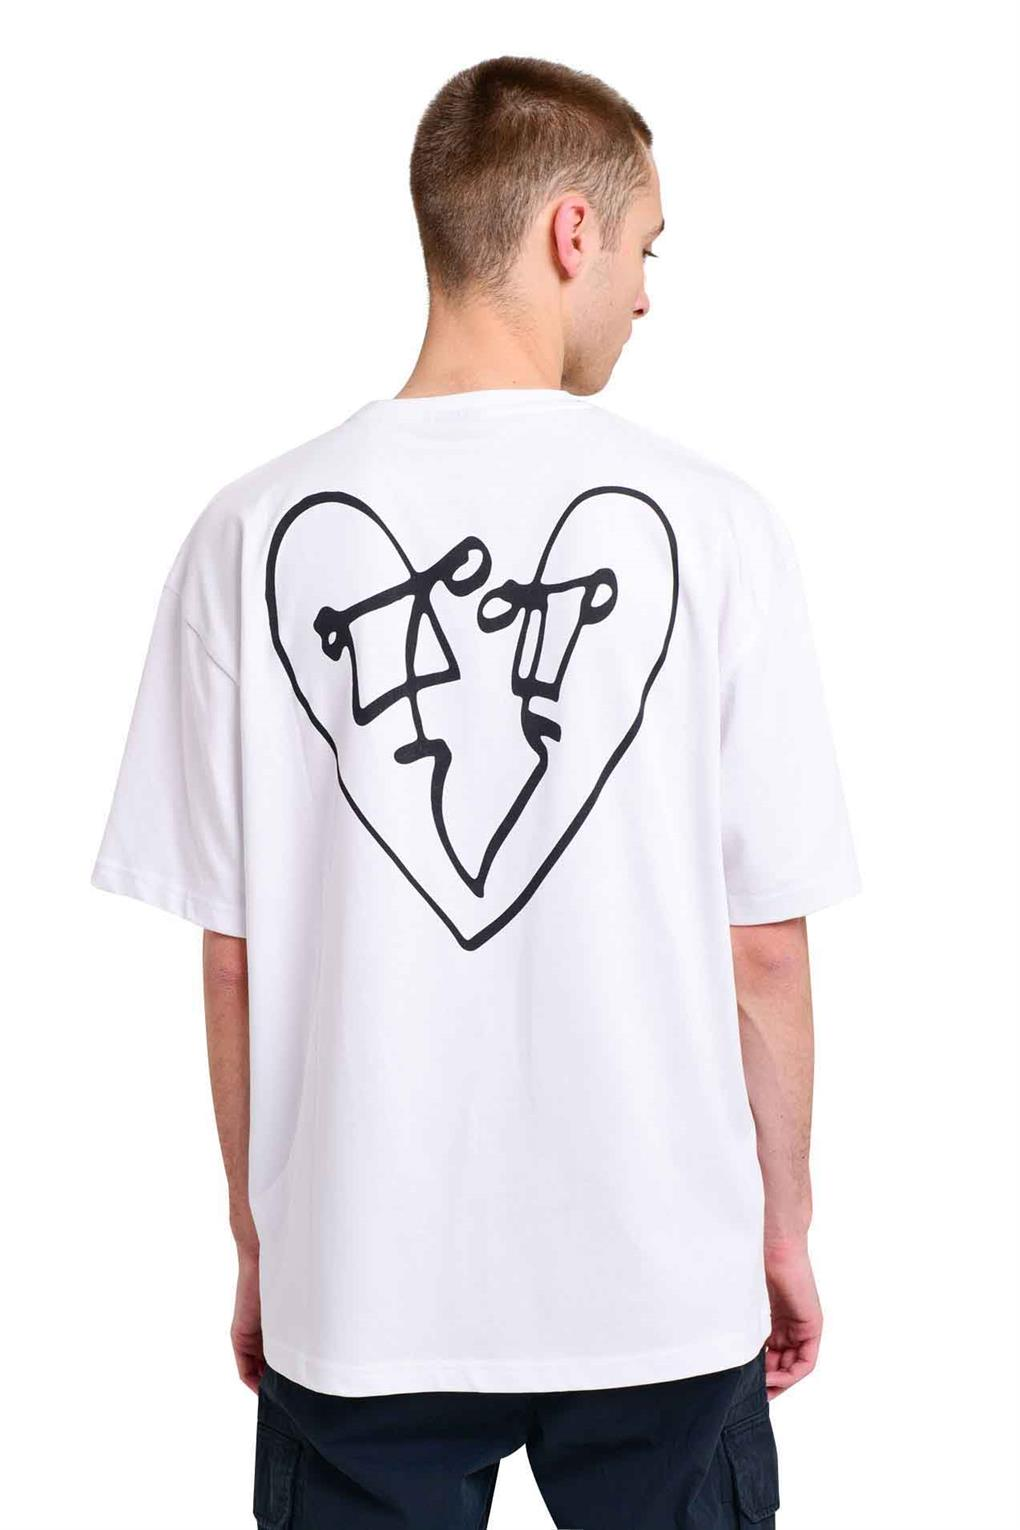 LUV BACK PRINT OVERSIZED TEE | WHITE